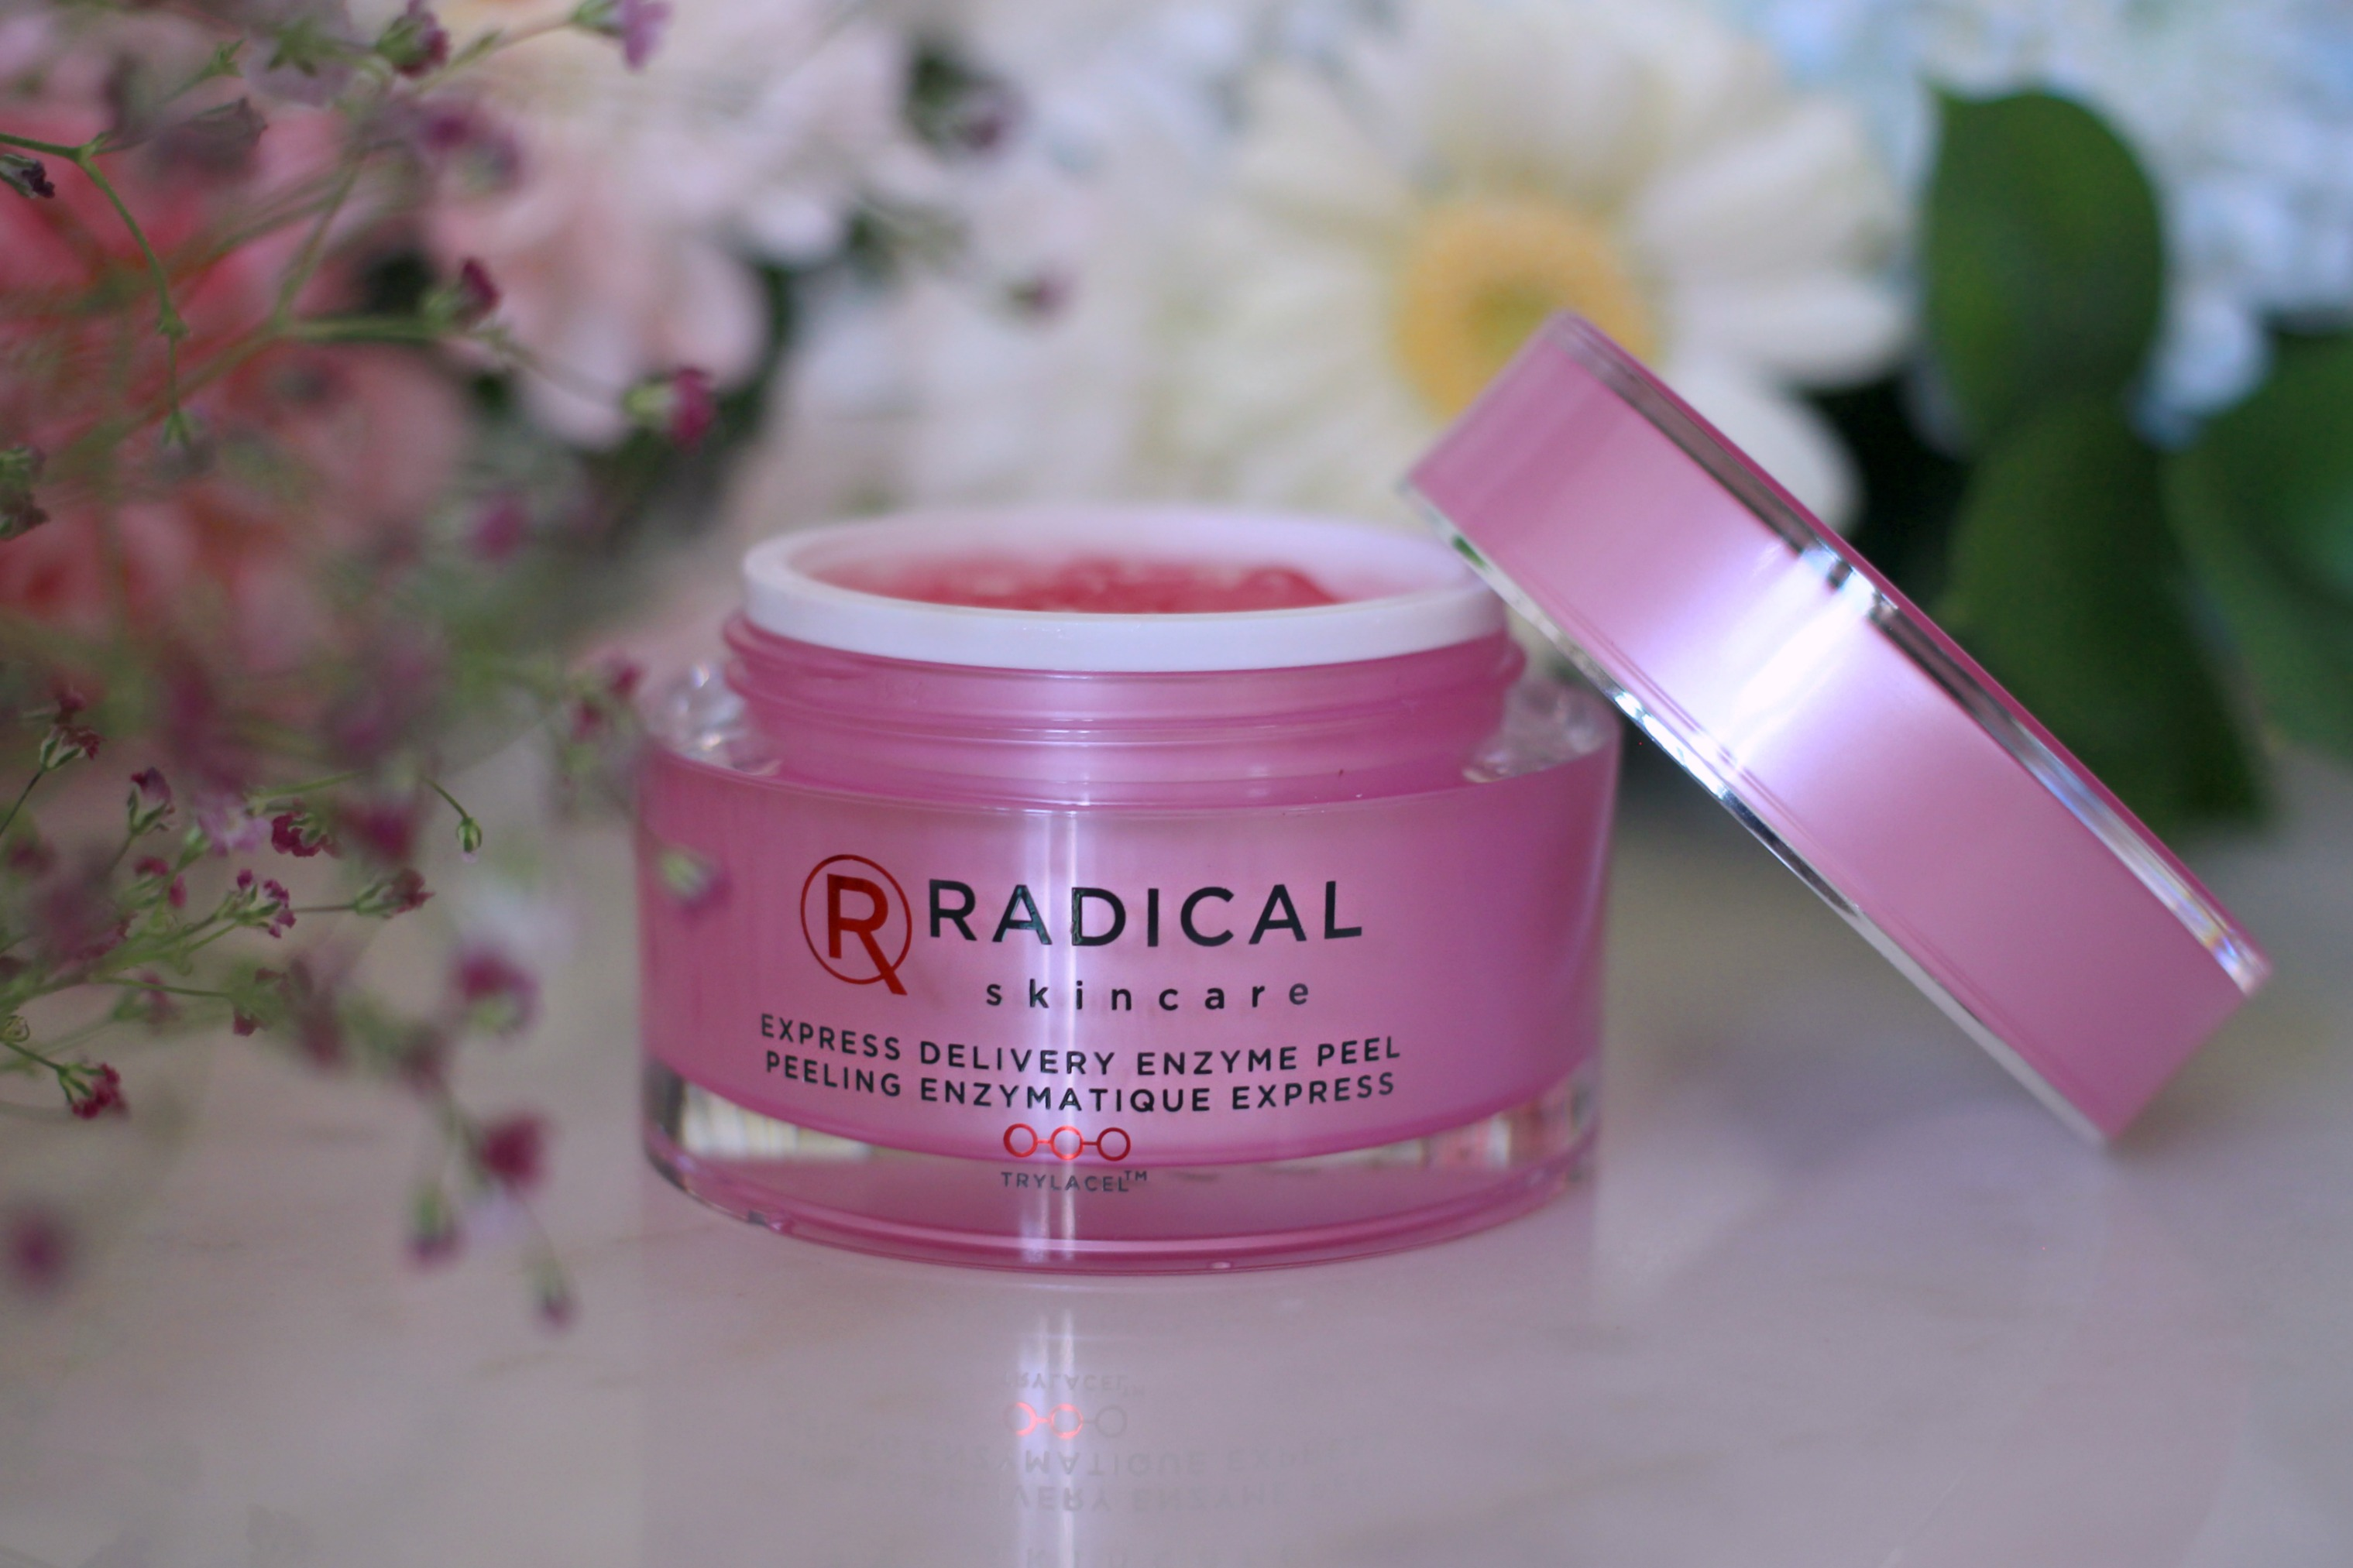 Radical Skincare Express Delivery Enzyme Peel Review